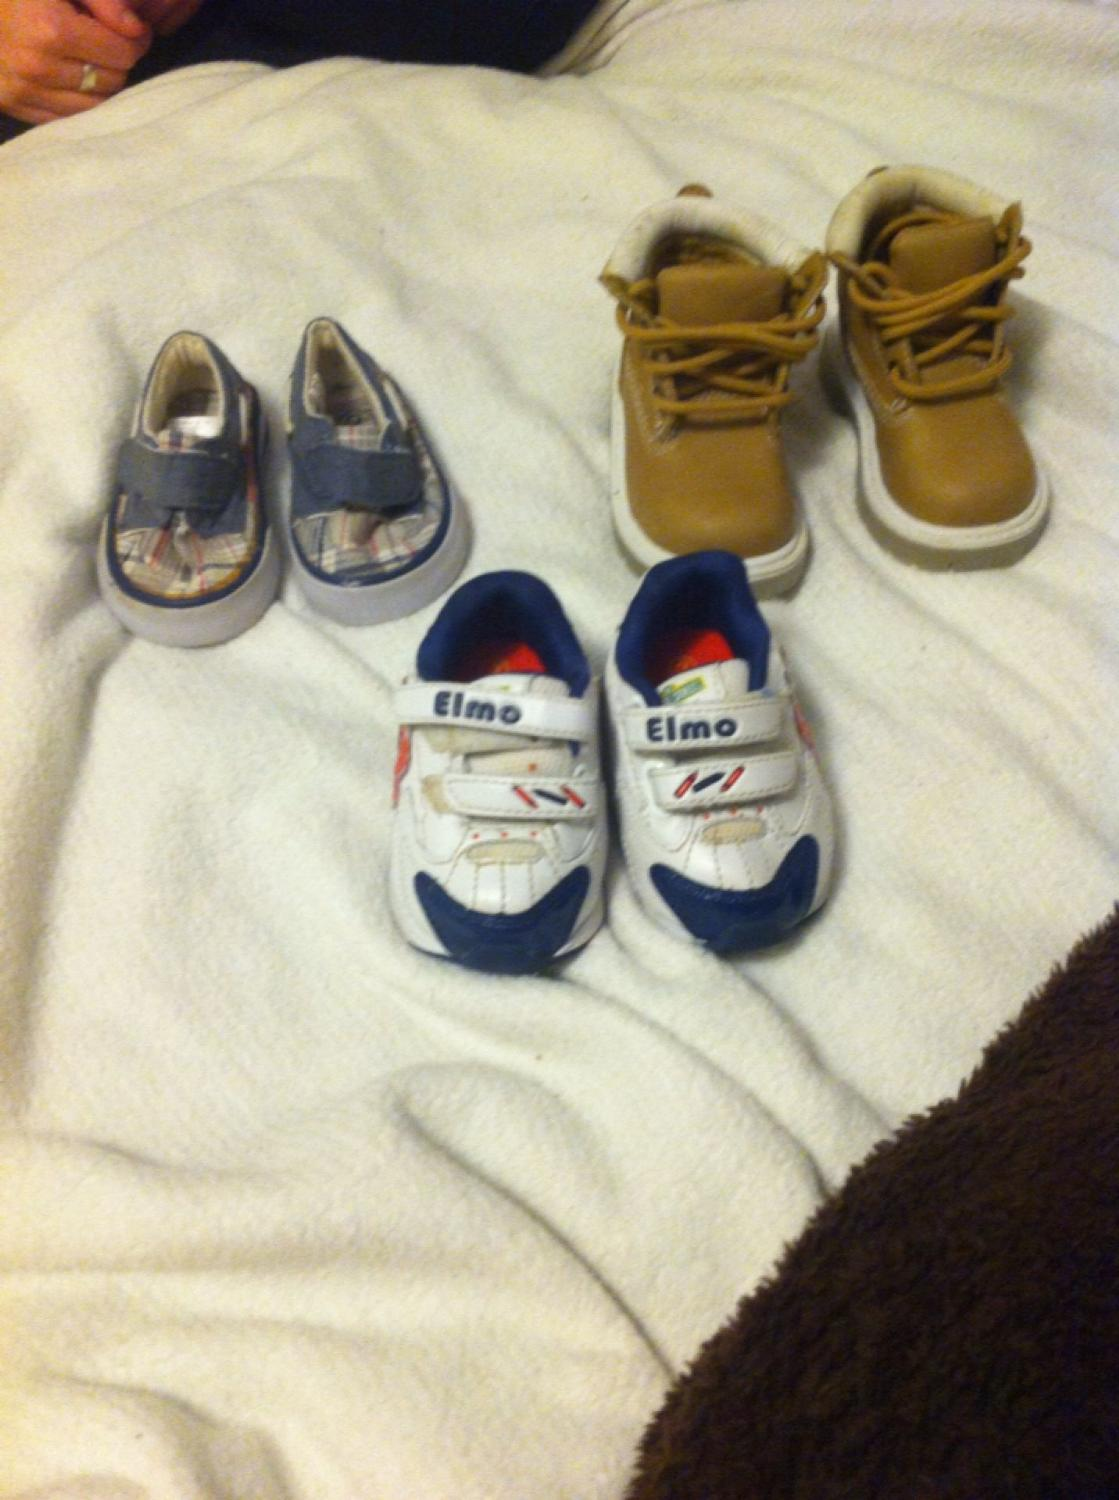 0e209c8c640b8 Baby shoes. Brown boots are size 3 (asking $7) Elmo shoes are size 2  (asking $5) And plaid shoes are size 2 (asking $5)